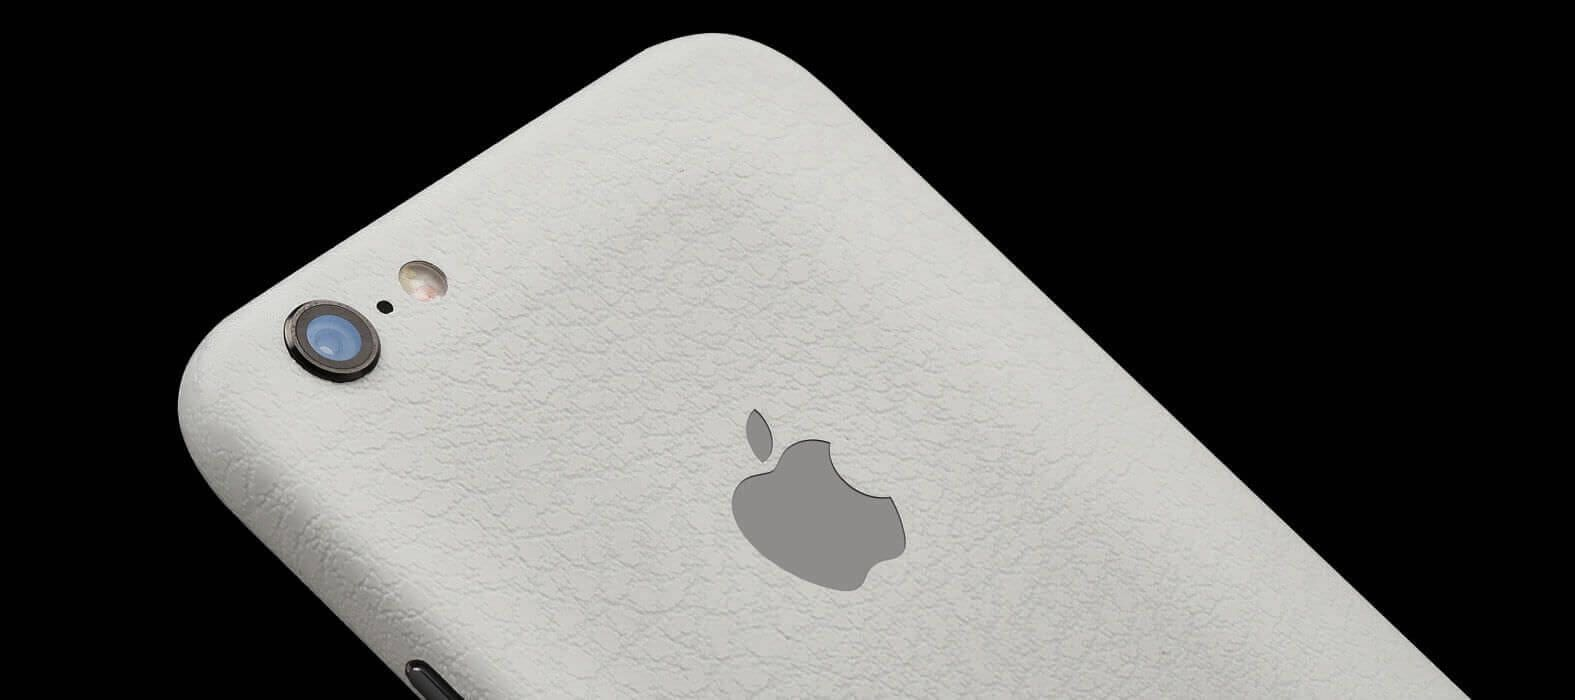 iPhone 6 Plus Skins, Wraps & decals - White Leather